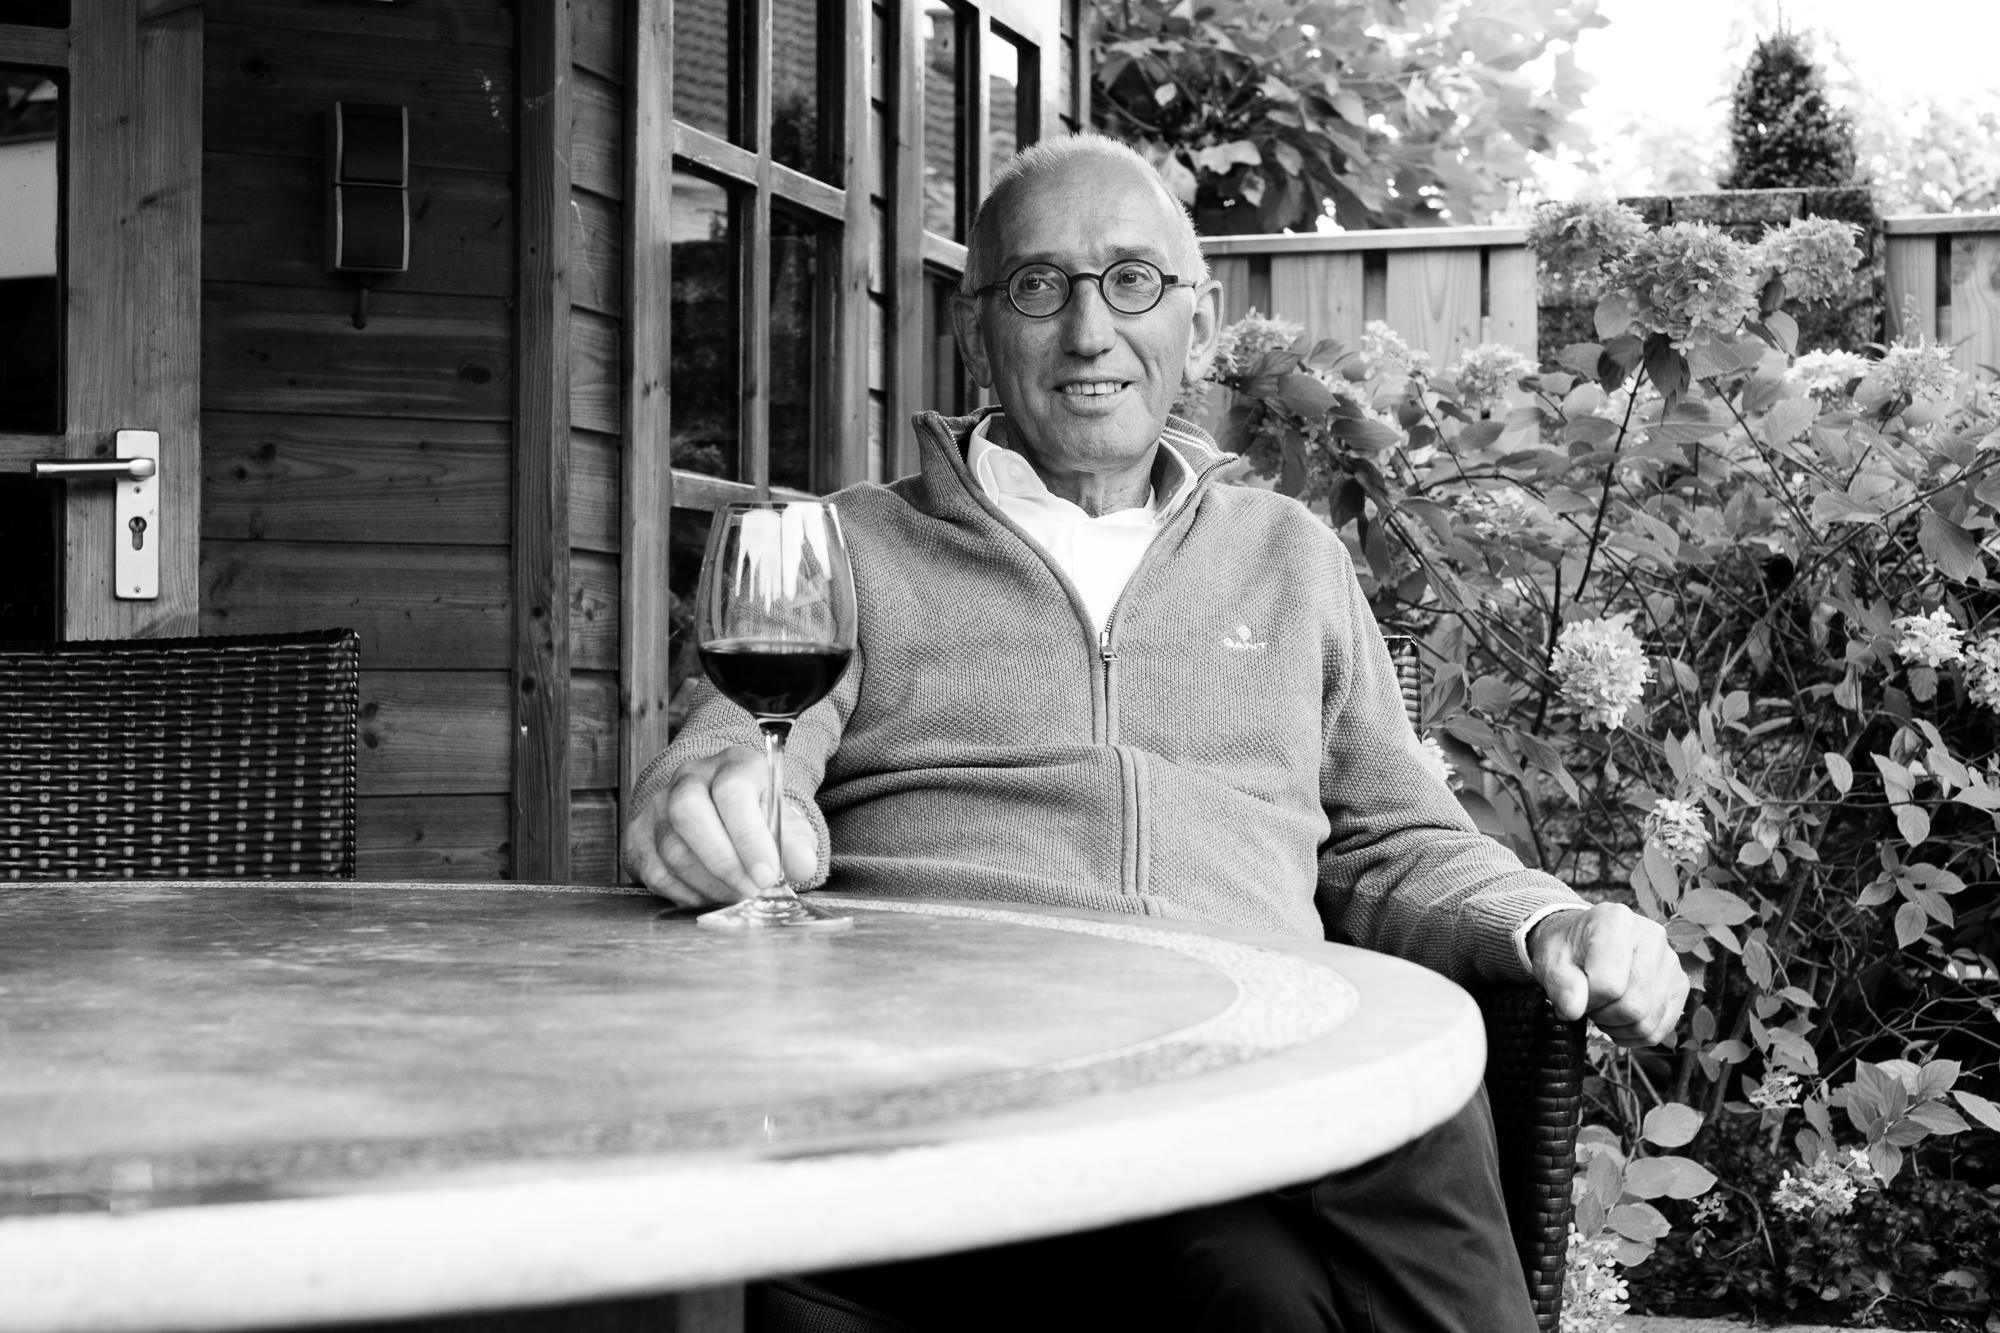 A man in his garden, enjoying a glass of wine